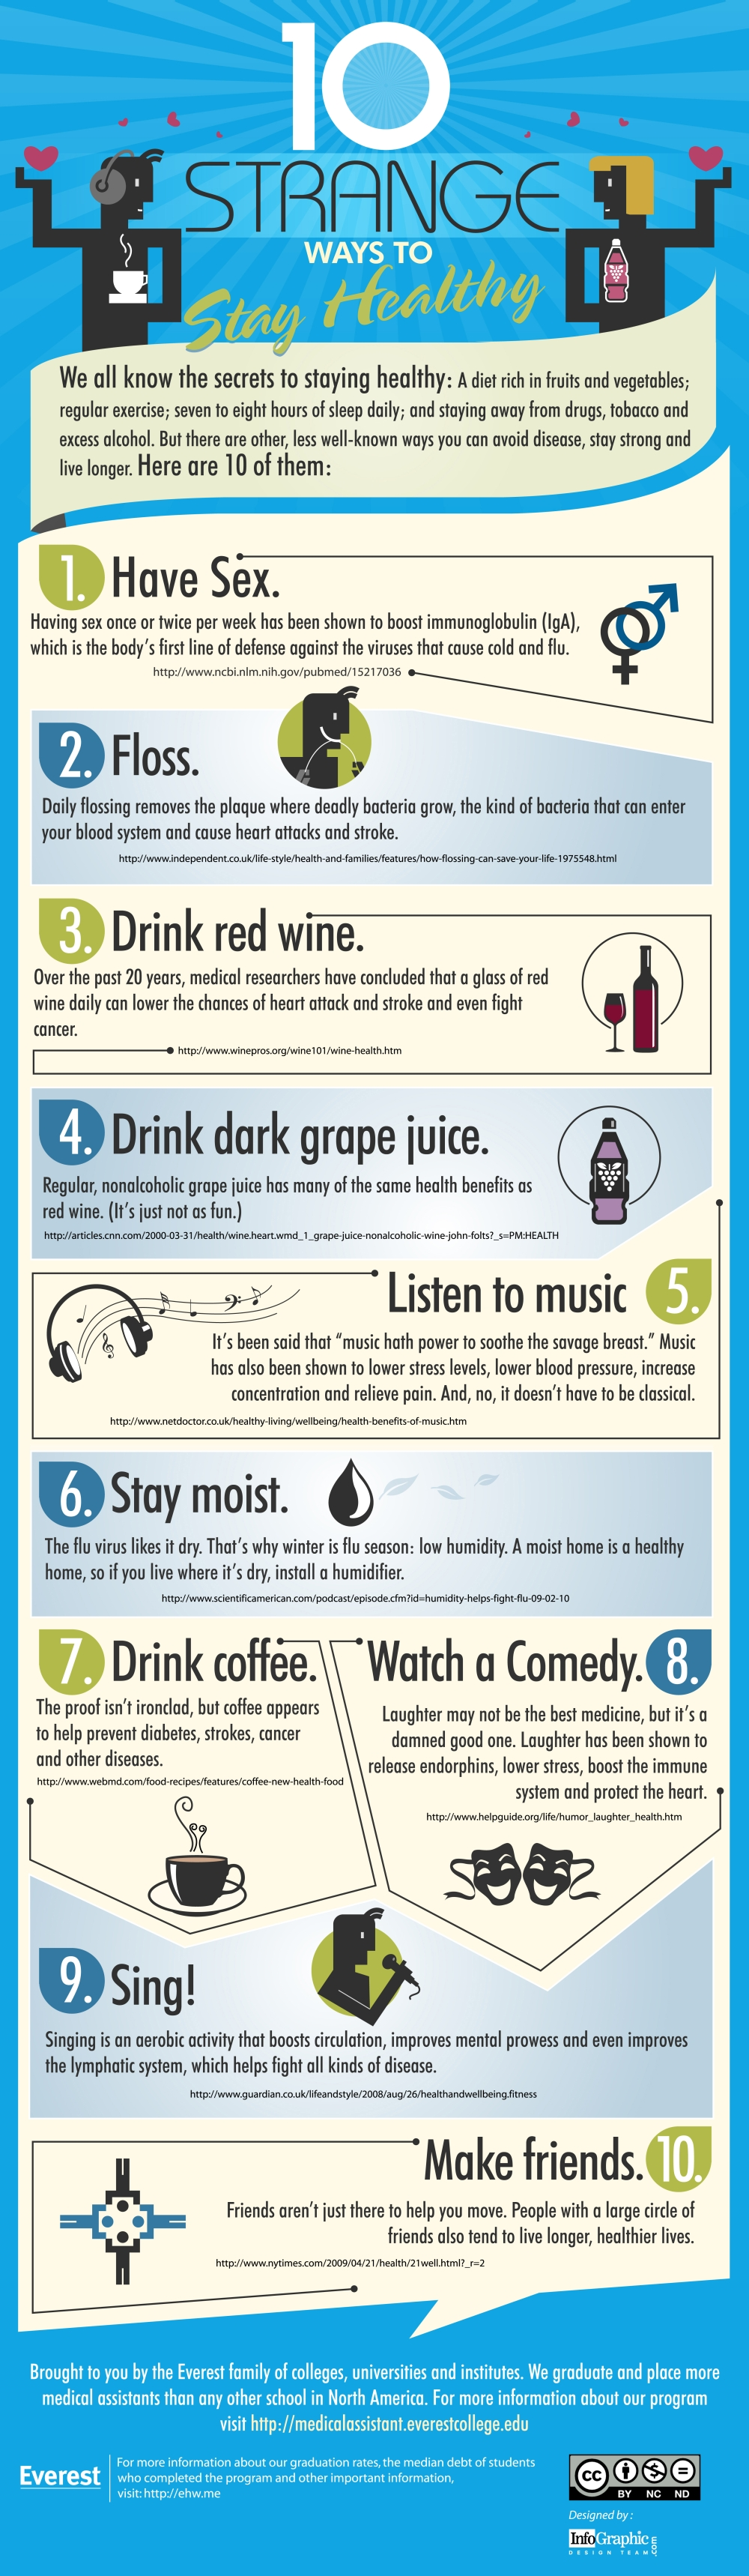 10 ways to stay healthy infographic 10 Interesting Ways to Stay Healthy (Infographic)